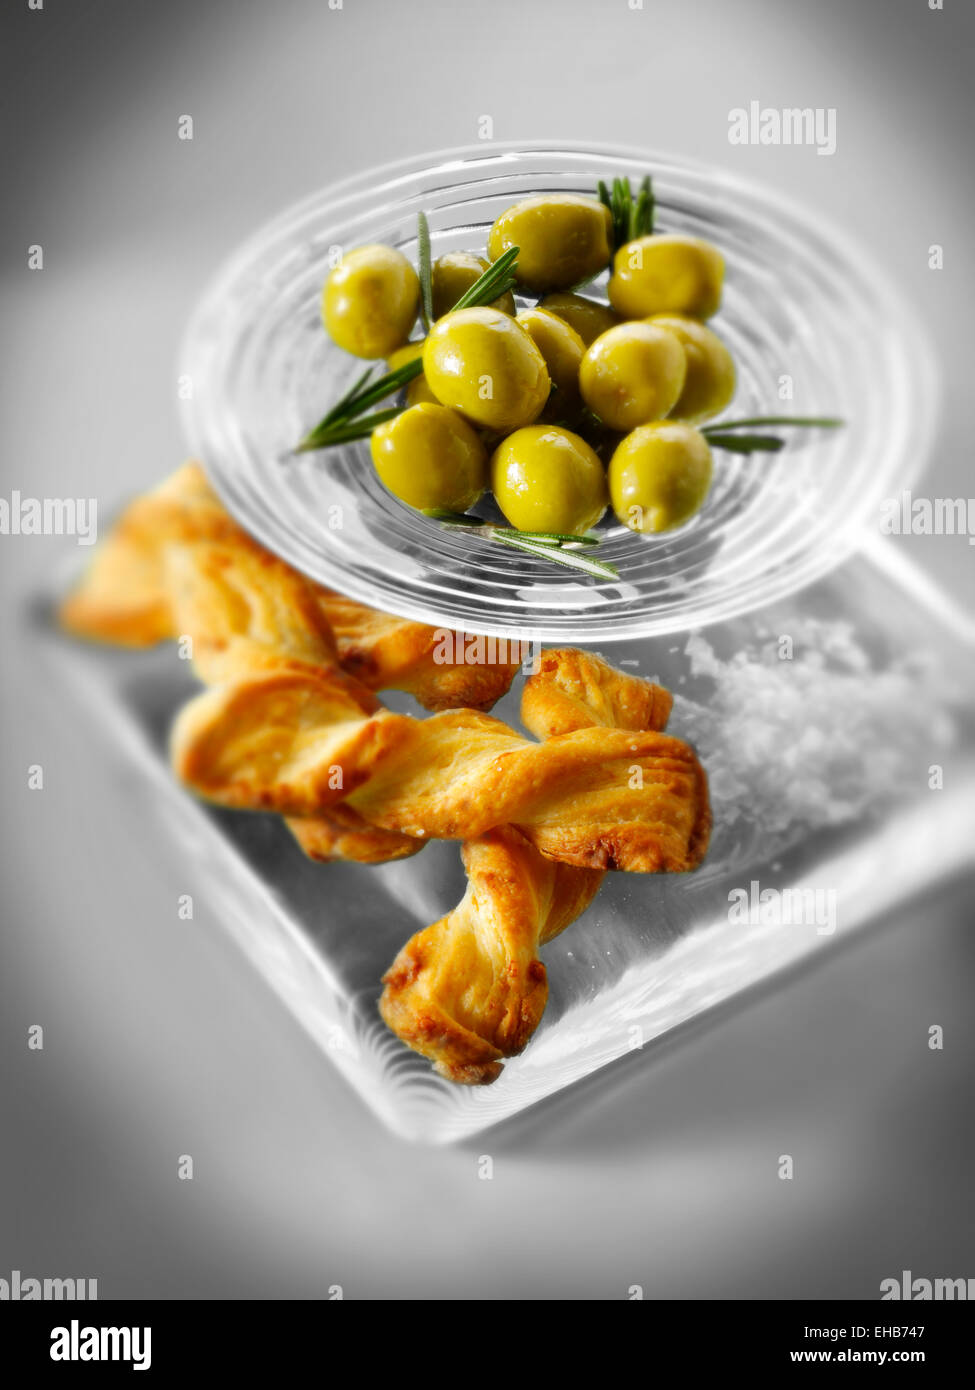 Olives an bread sticks snack Stock Photo